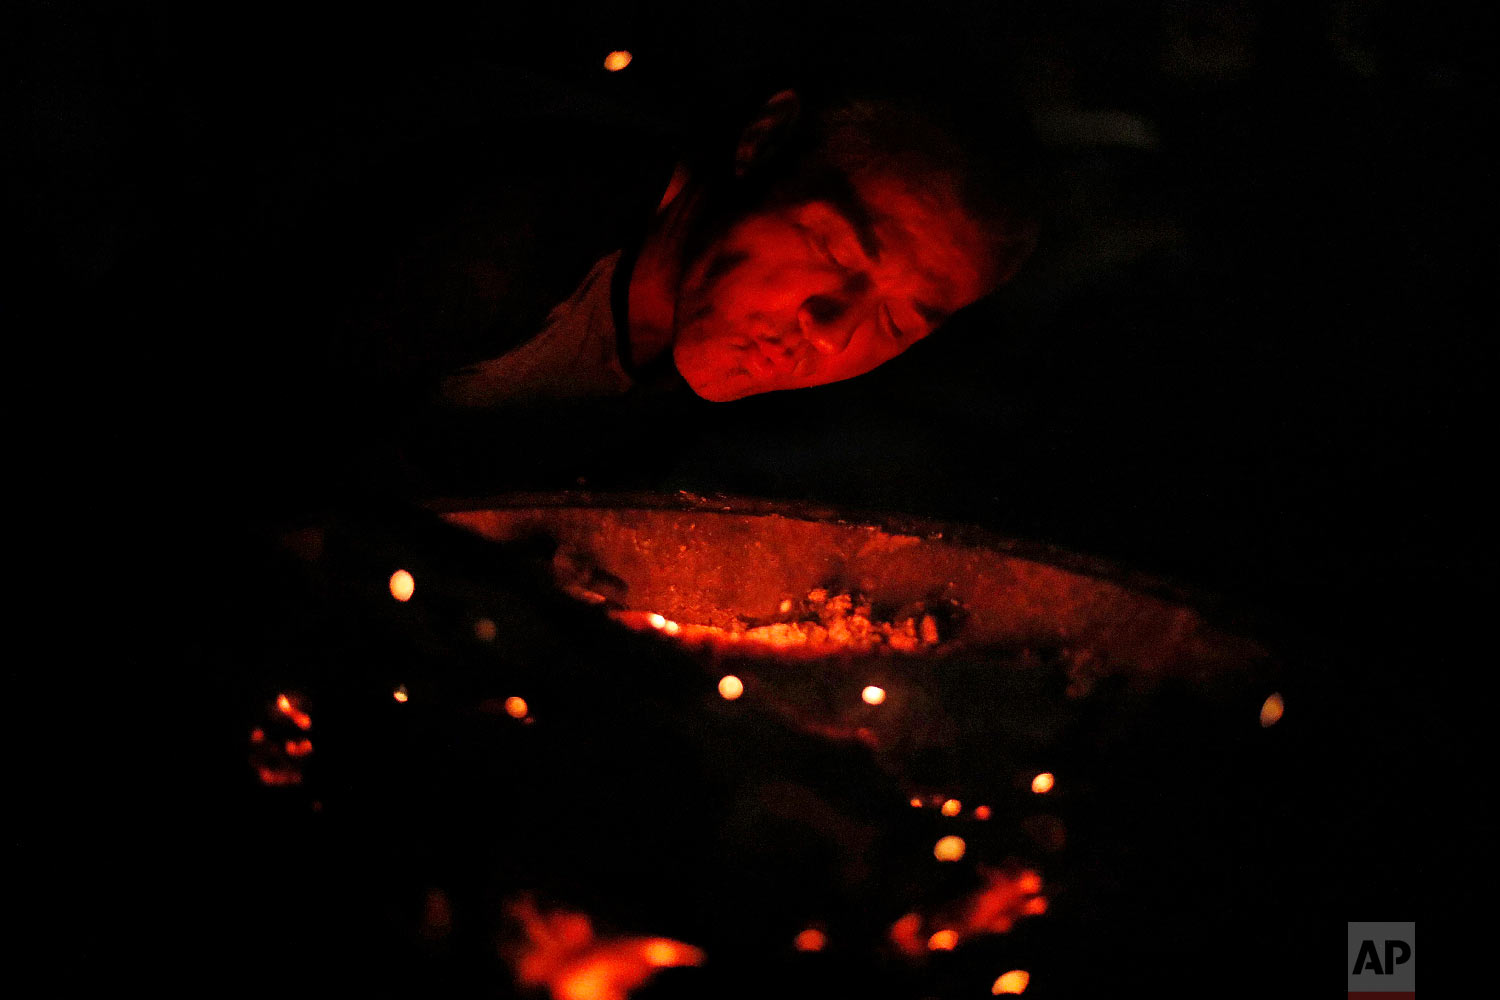 Gene Hogan blows on a campfire outside the tent he's living in since becoming homeless from Hurricane Michael in Youngstown, Fla, Wednesday, Jan. 23, 2019. (AP Photo/David Goldman)